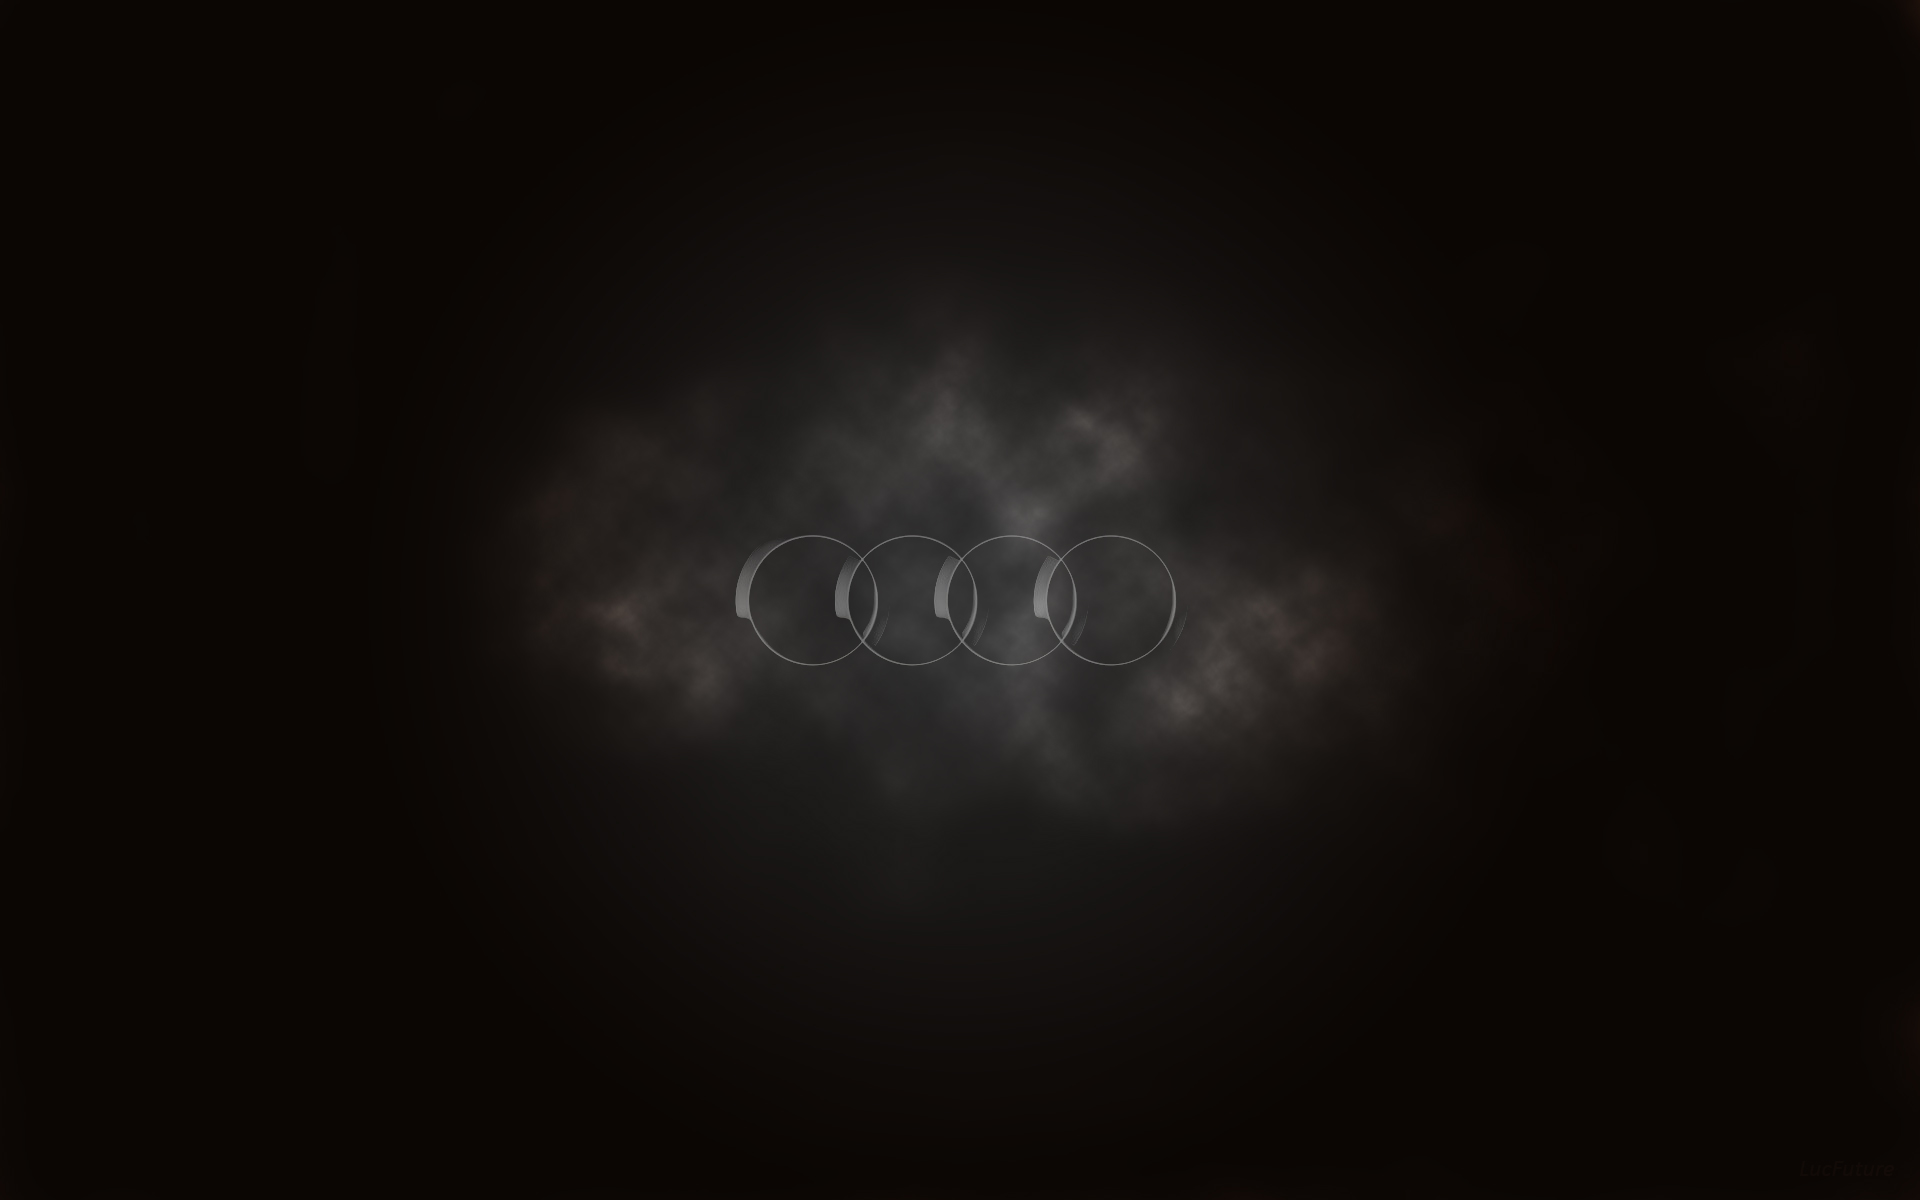 Audi Logo Hd Wallpapers Pictures Images